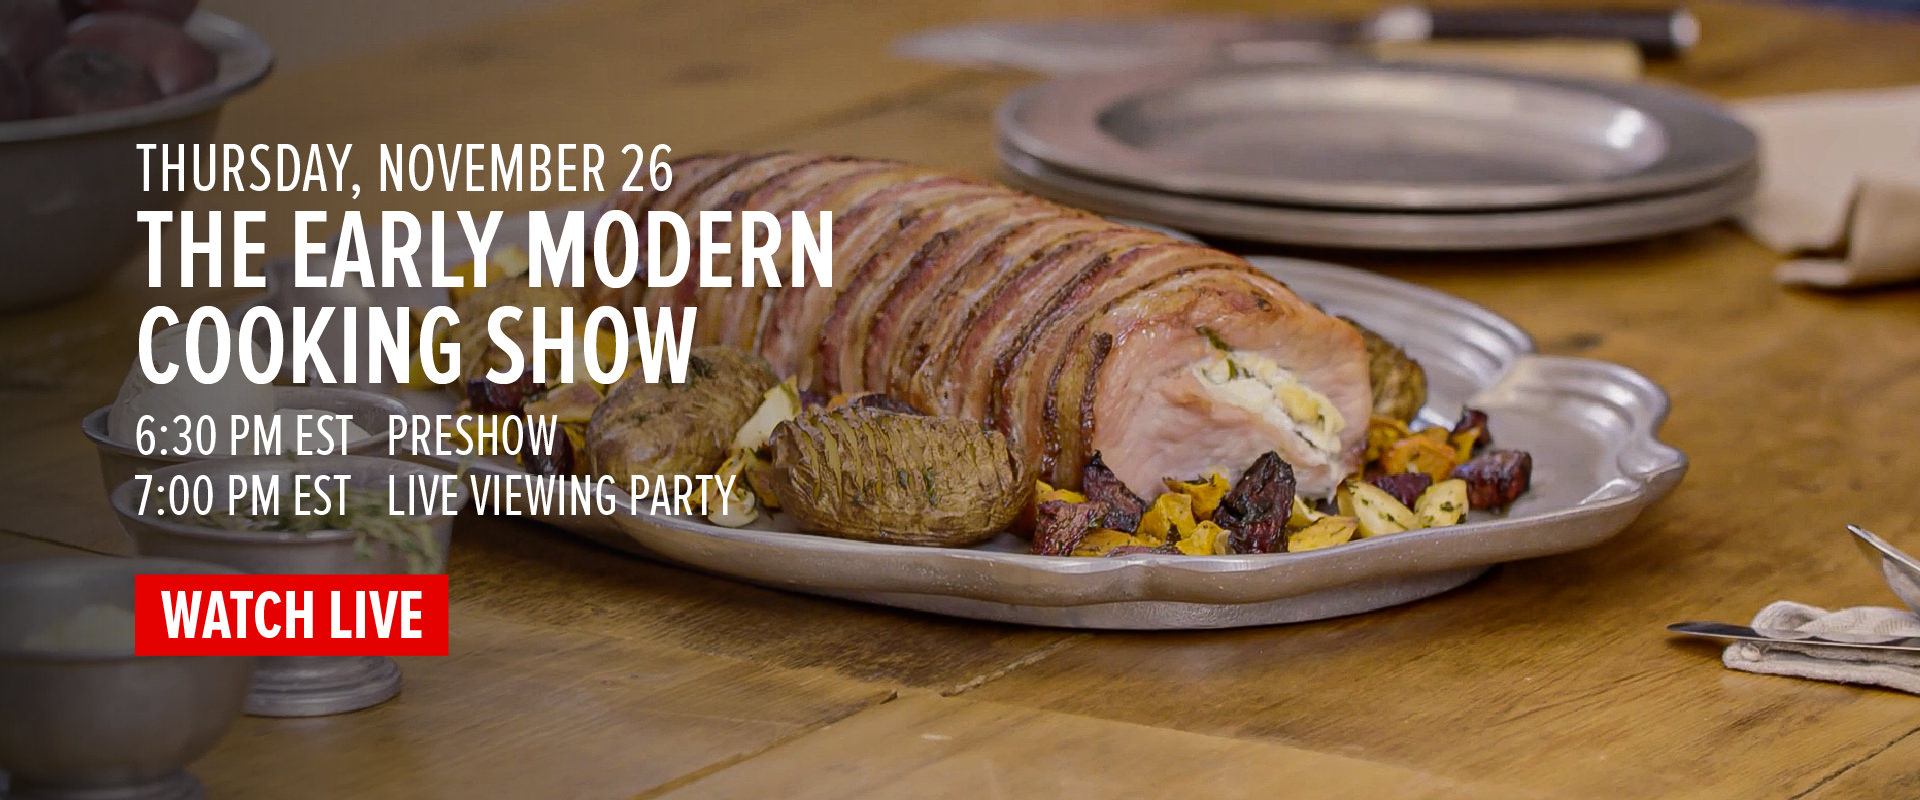 THE EARLY MODERN COOKING SHOW LIVE VIEWING PARTY